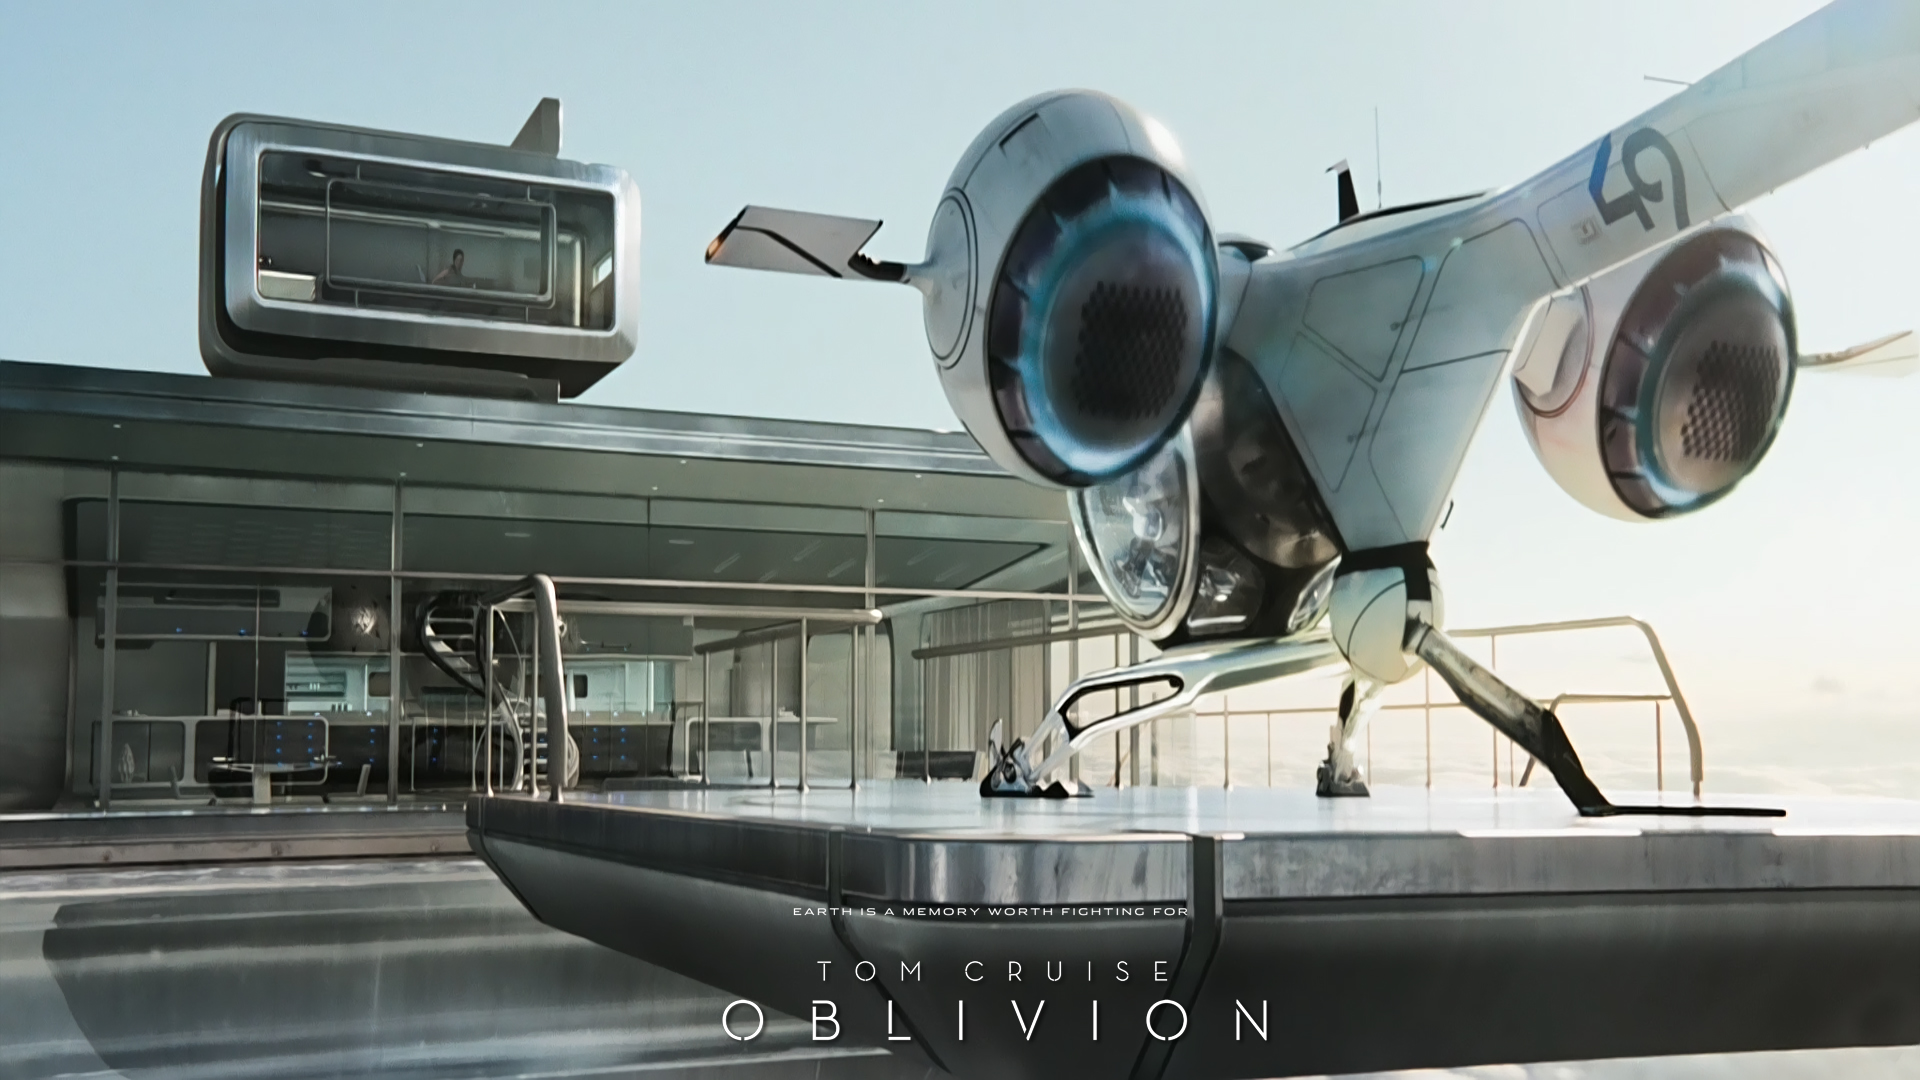 Tom Cruise Oblivion wallpapers 2 1920x1080